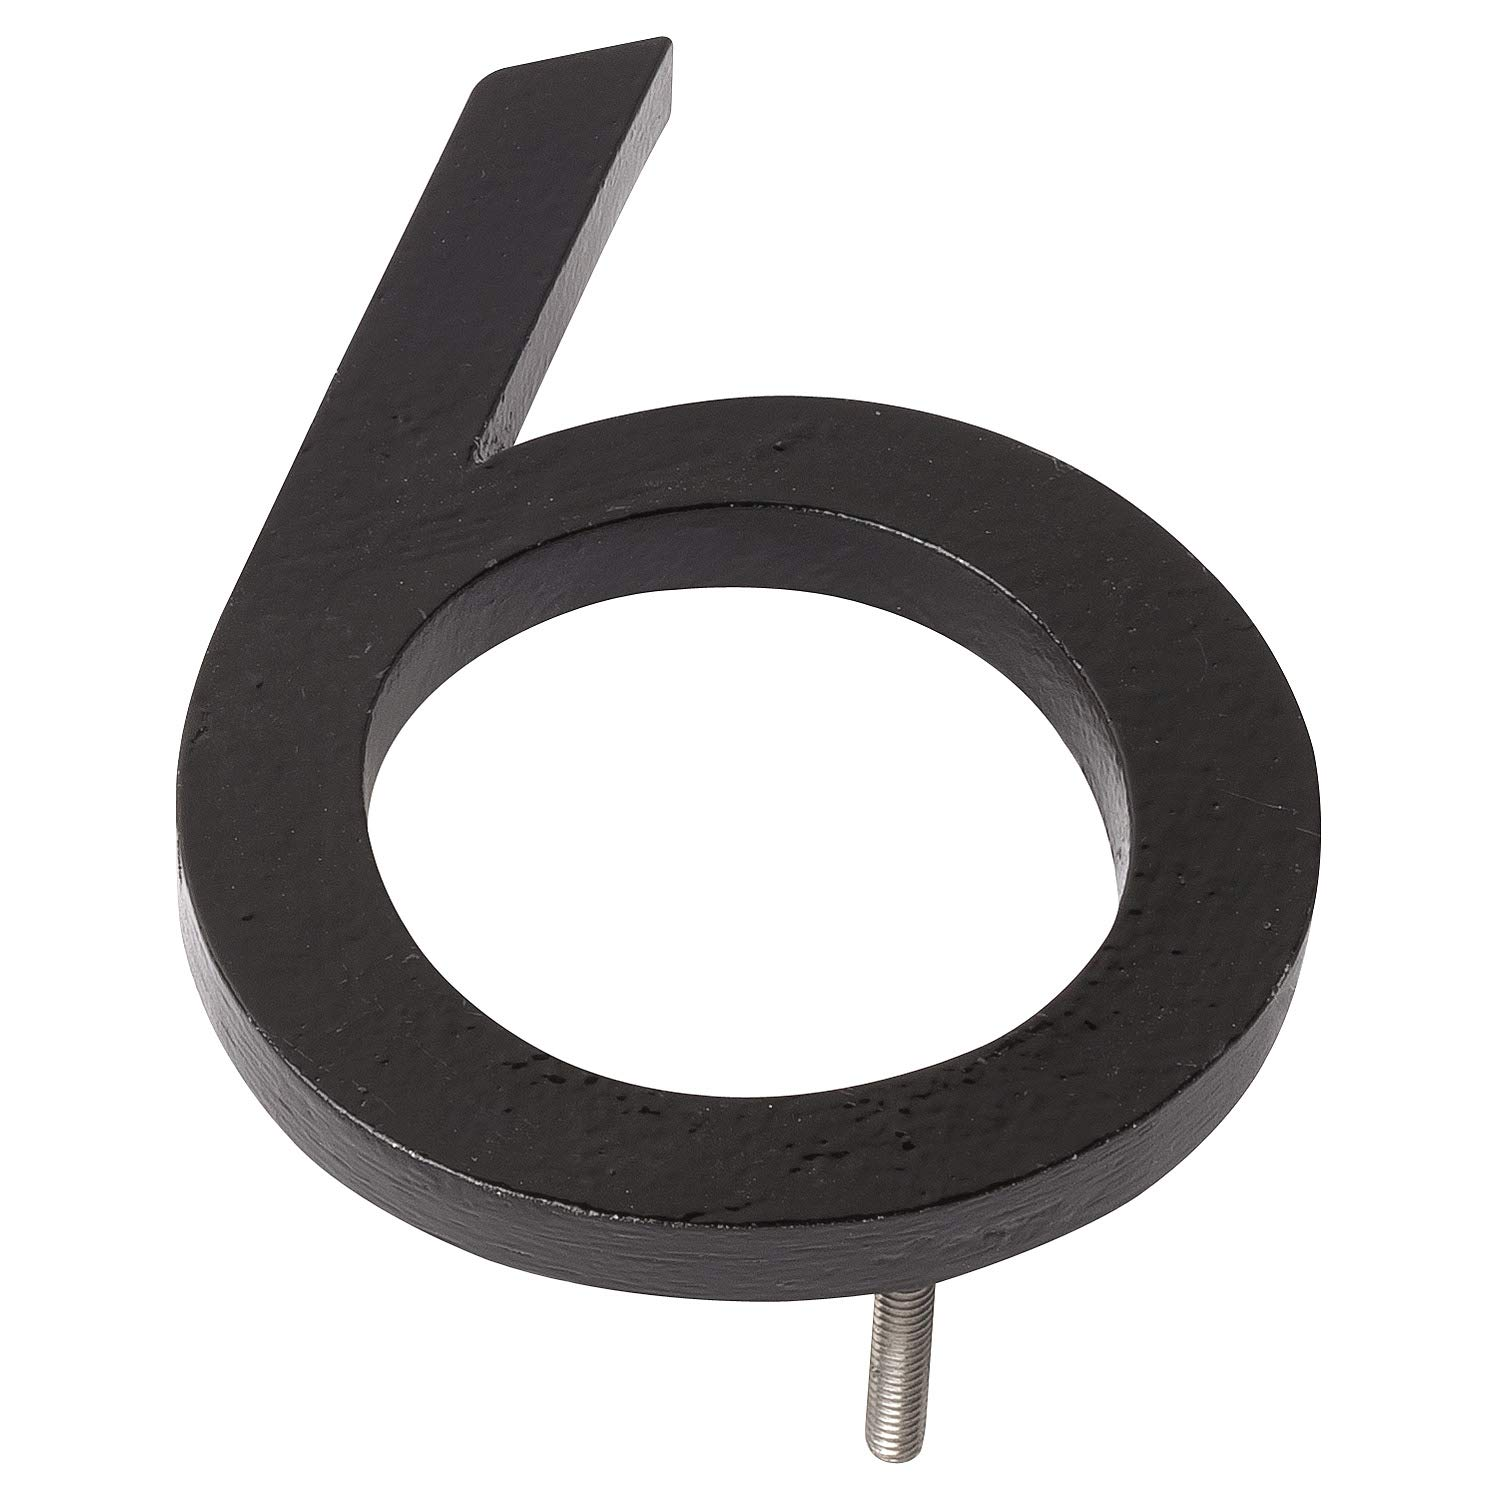 Montague Metal Products MHN-06-6-F-BK1 Floating House Number, 6'' x 4.25'' x 0.31'' Black